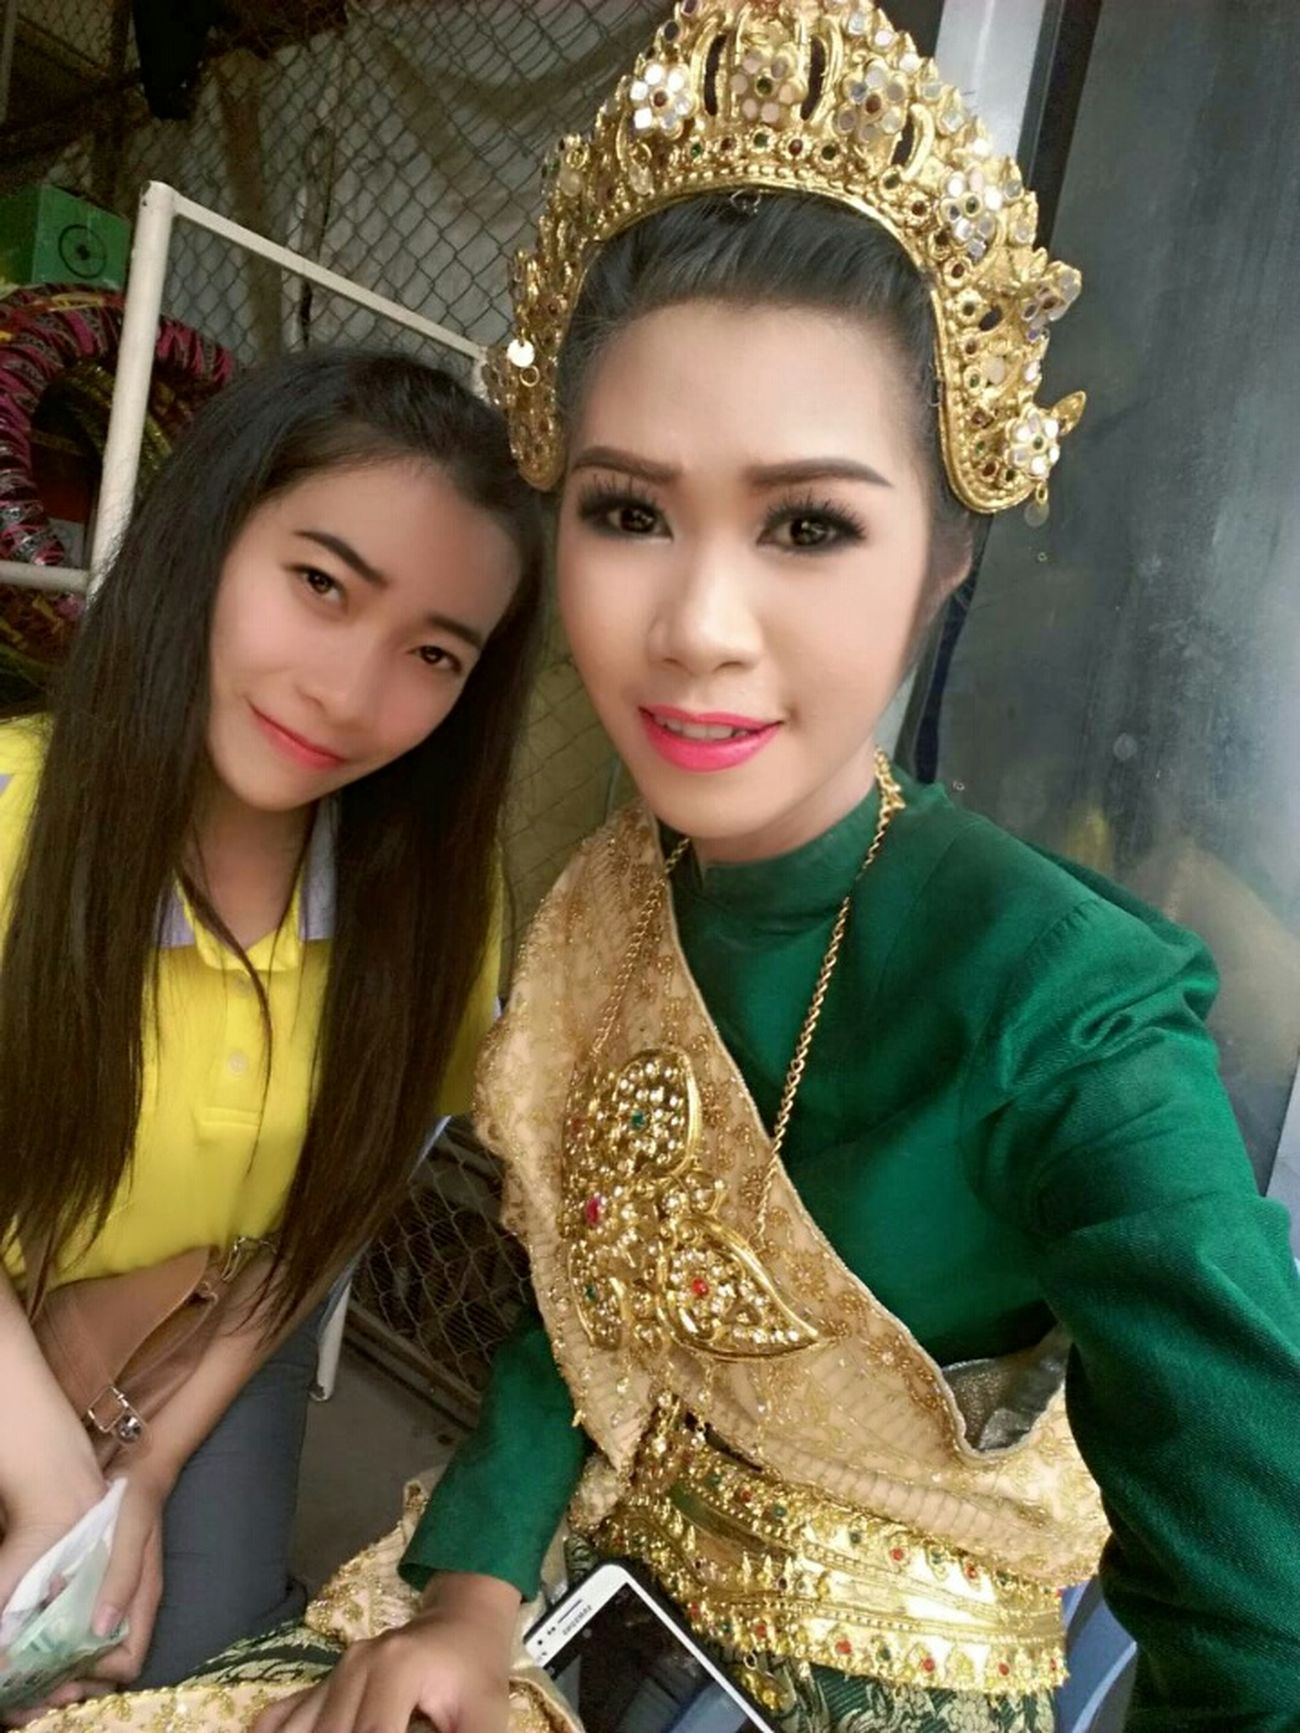 Thai dress 😃😊 That's Me Hello World Self Portrait Selfie✌ Thai Girls Thailand Thai Dress Enjoying Life Faces Of EyeEm Asian Girl